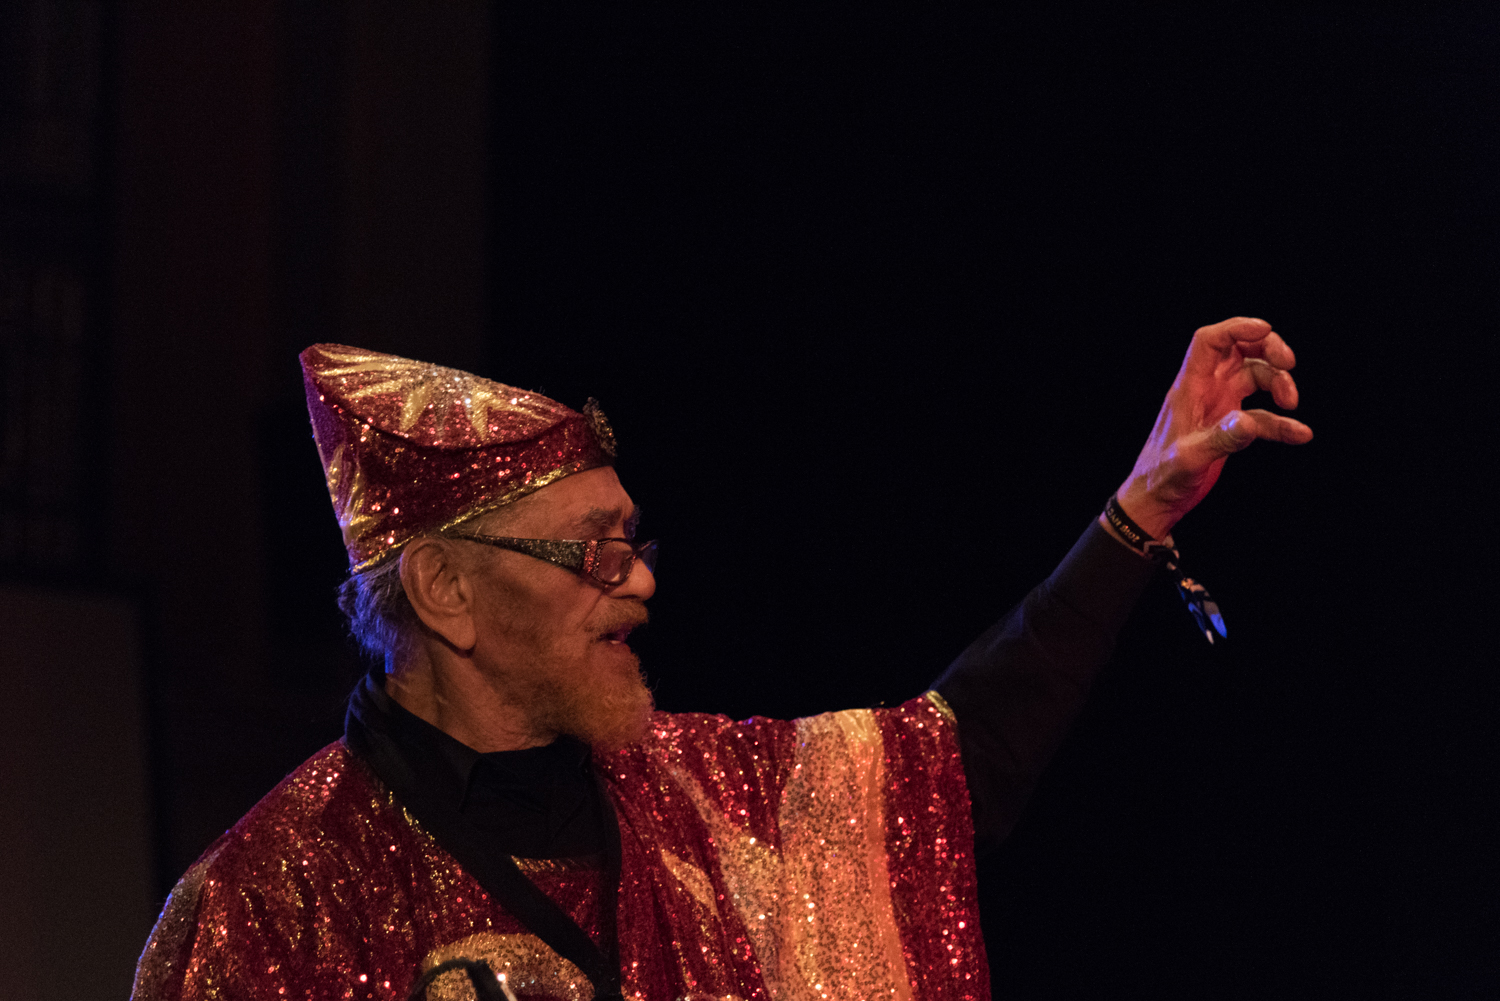 Sun Ra Arkestra - Marshall Allen performing at Judson Church, January 16.